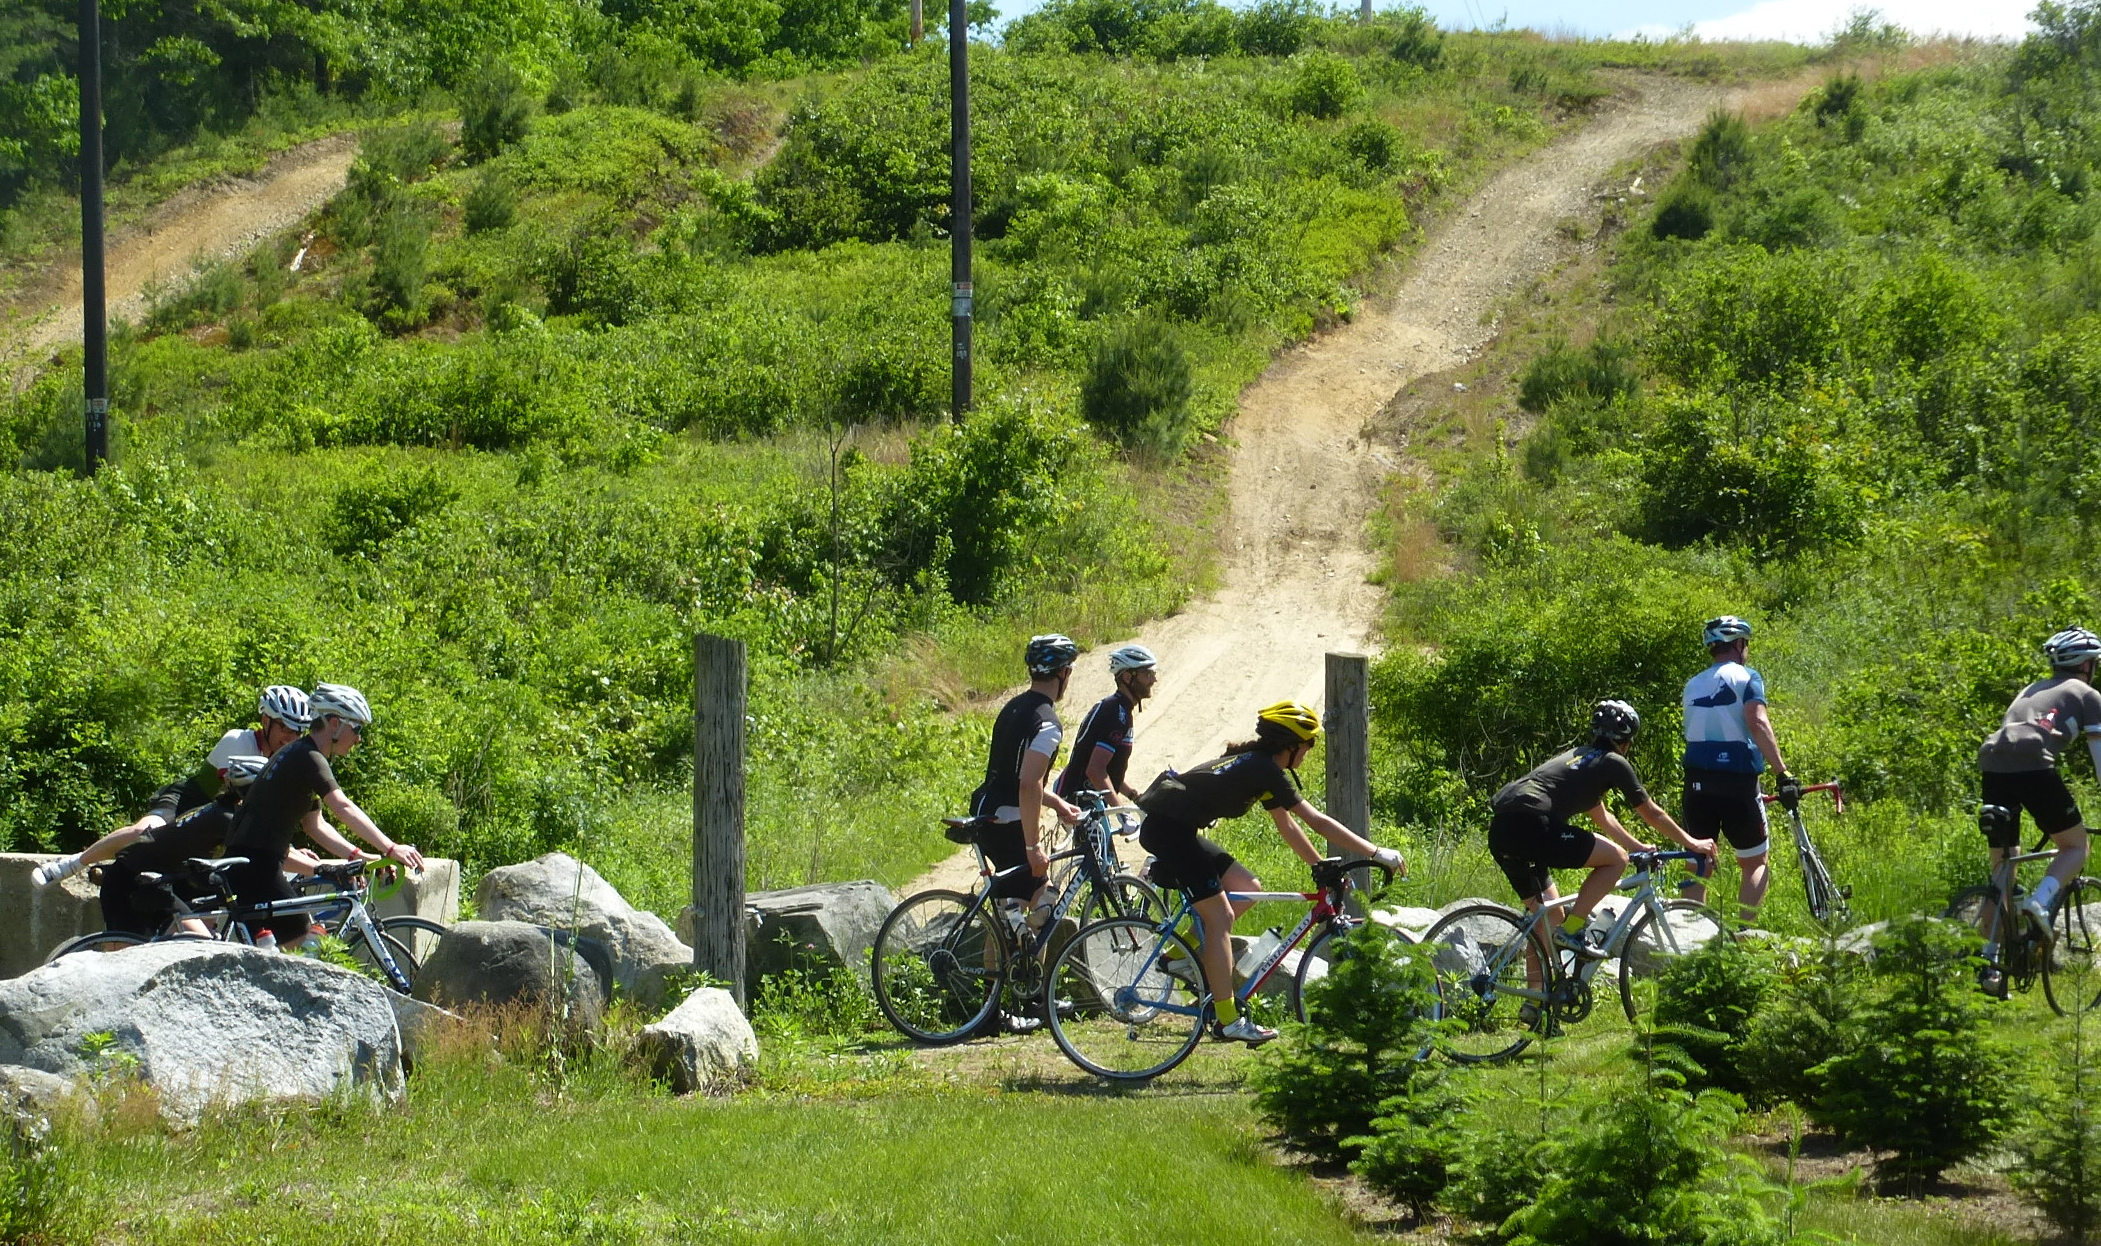 Riders on the 111 mile version of the Pioneer Ride get to experience some fun dirt sections.